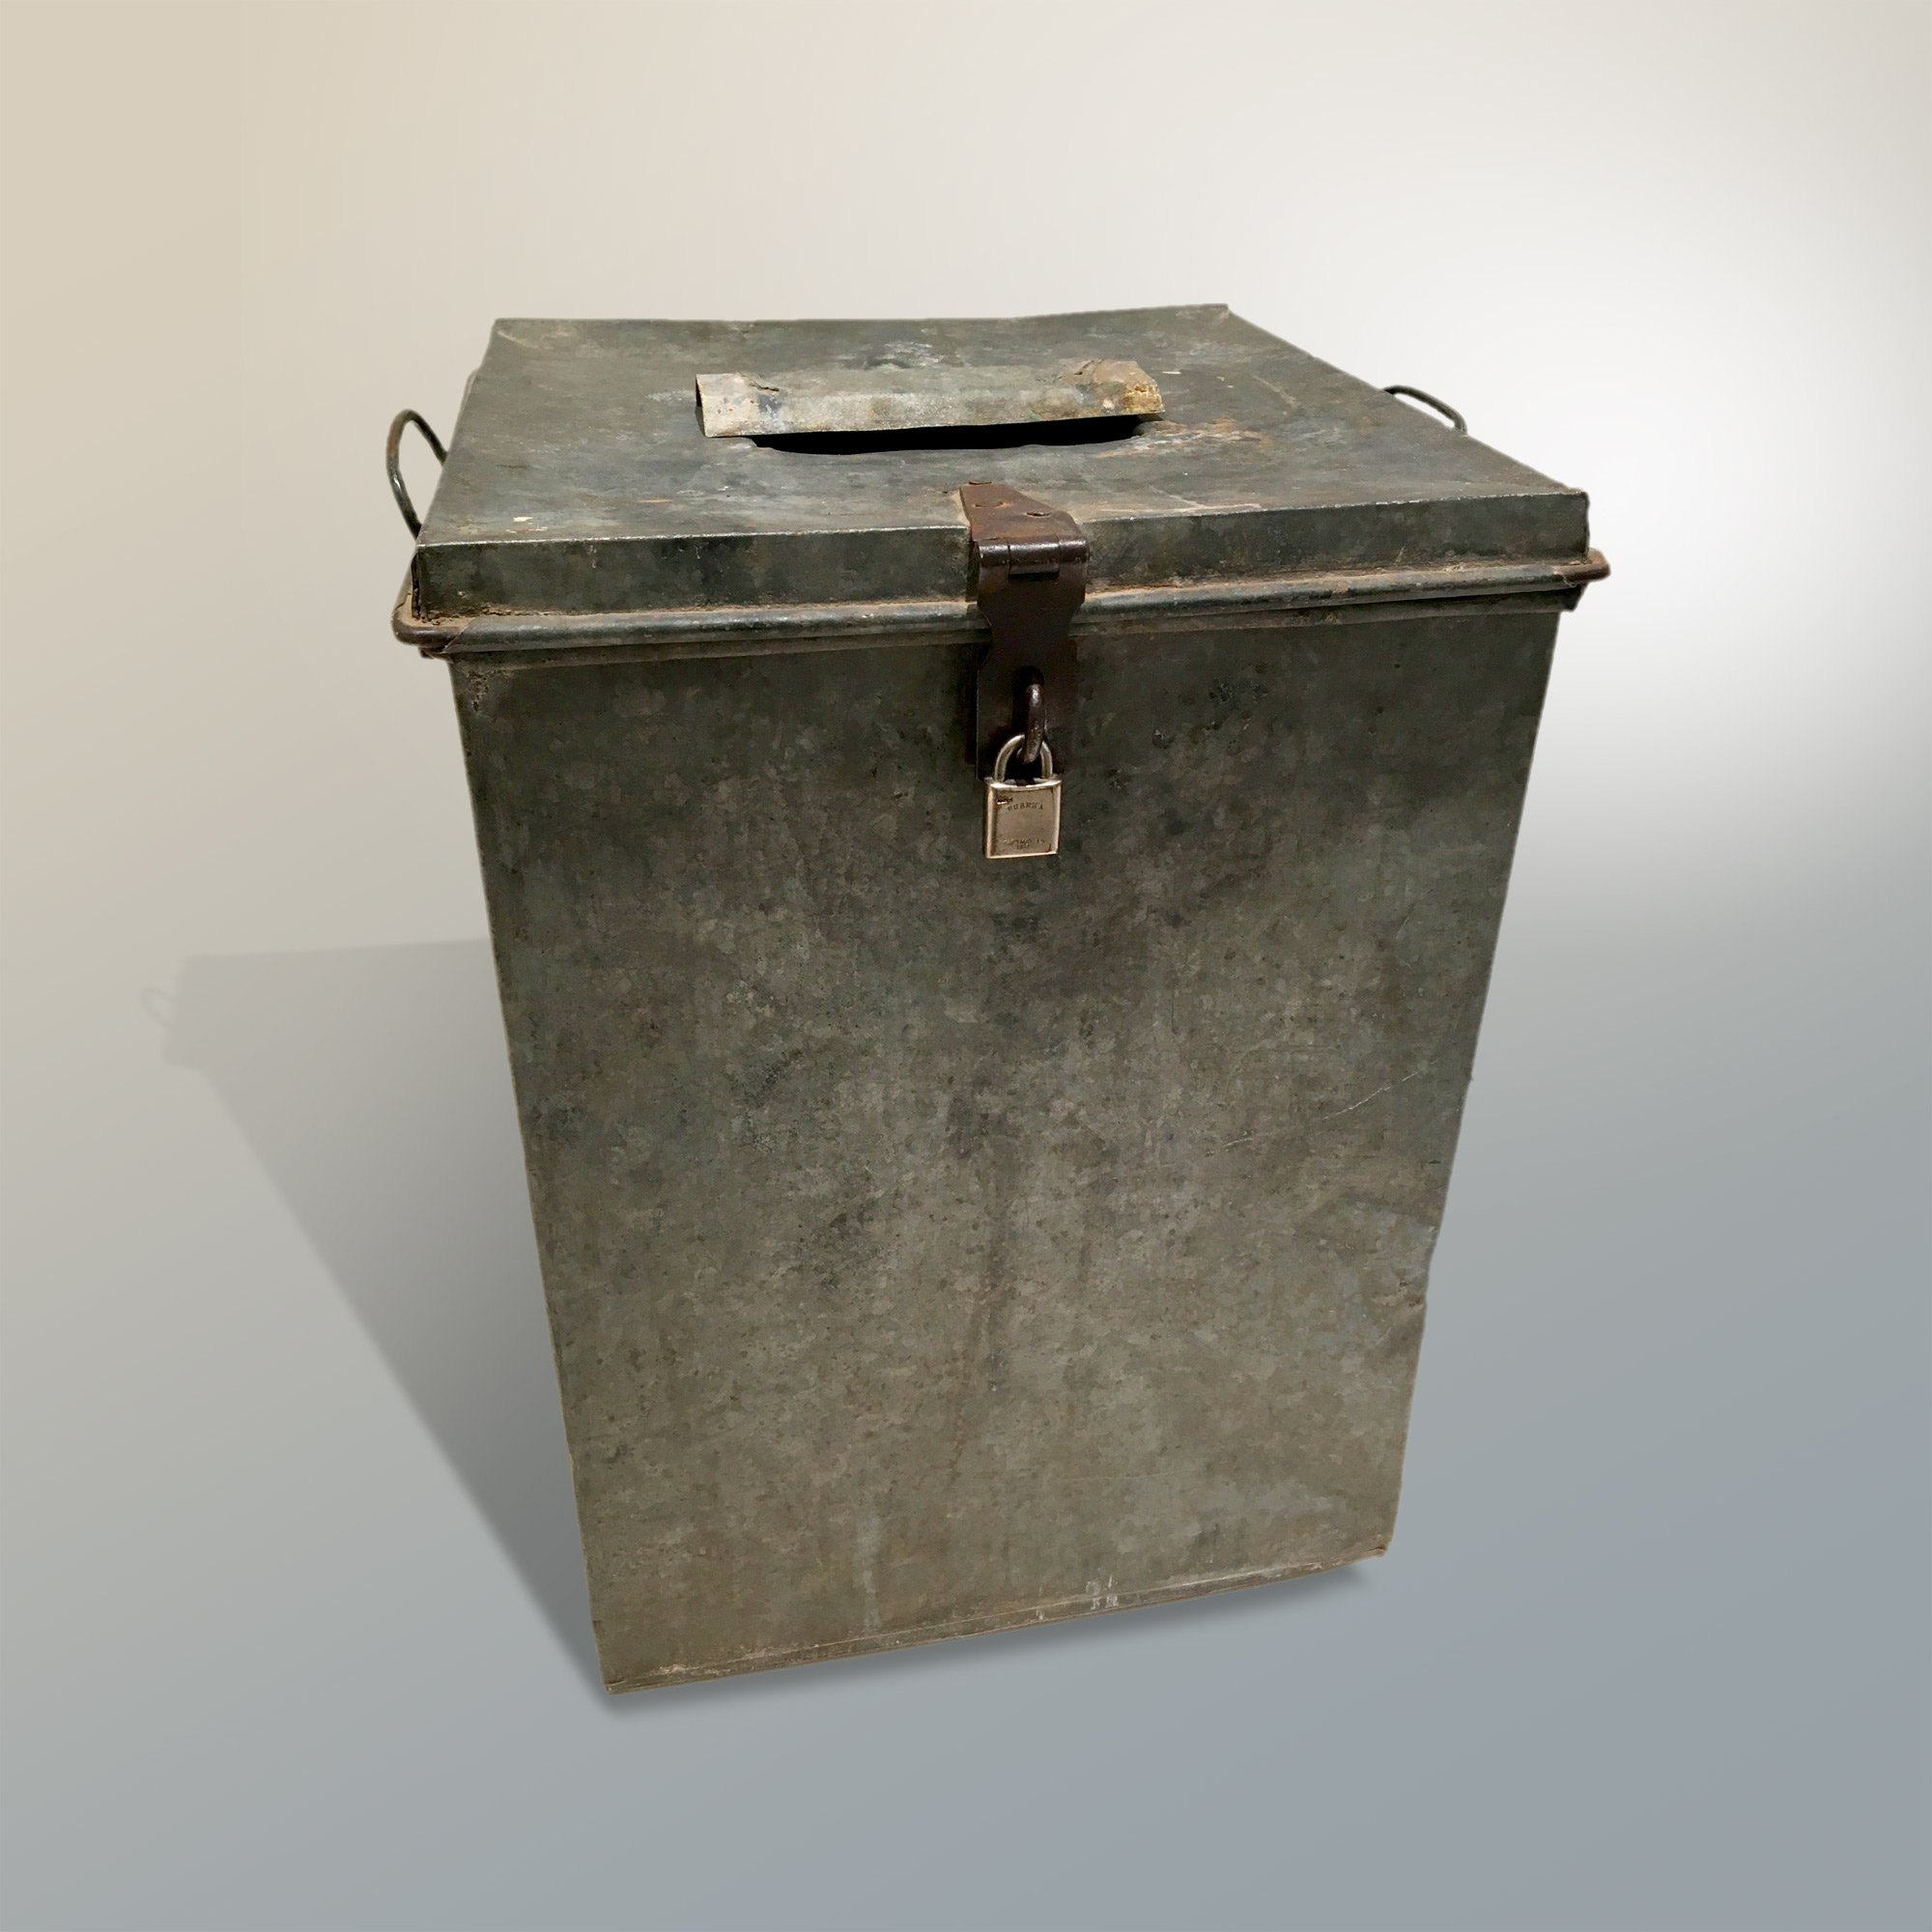 Ballot box from Grand County's first election